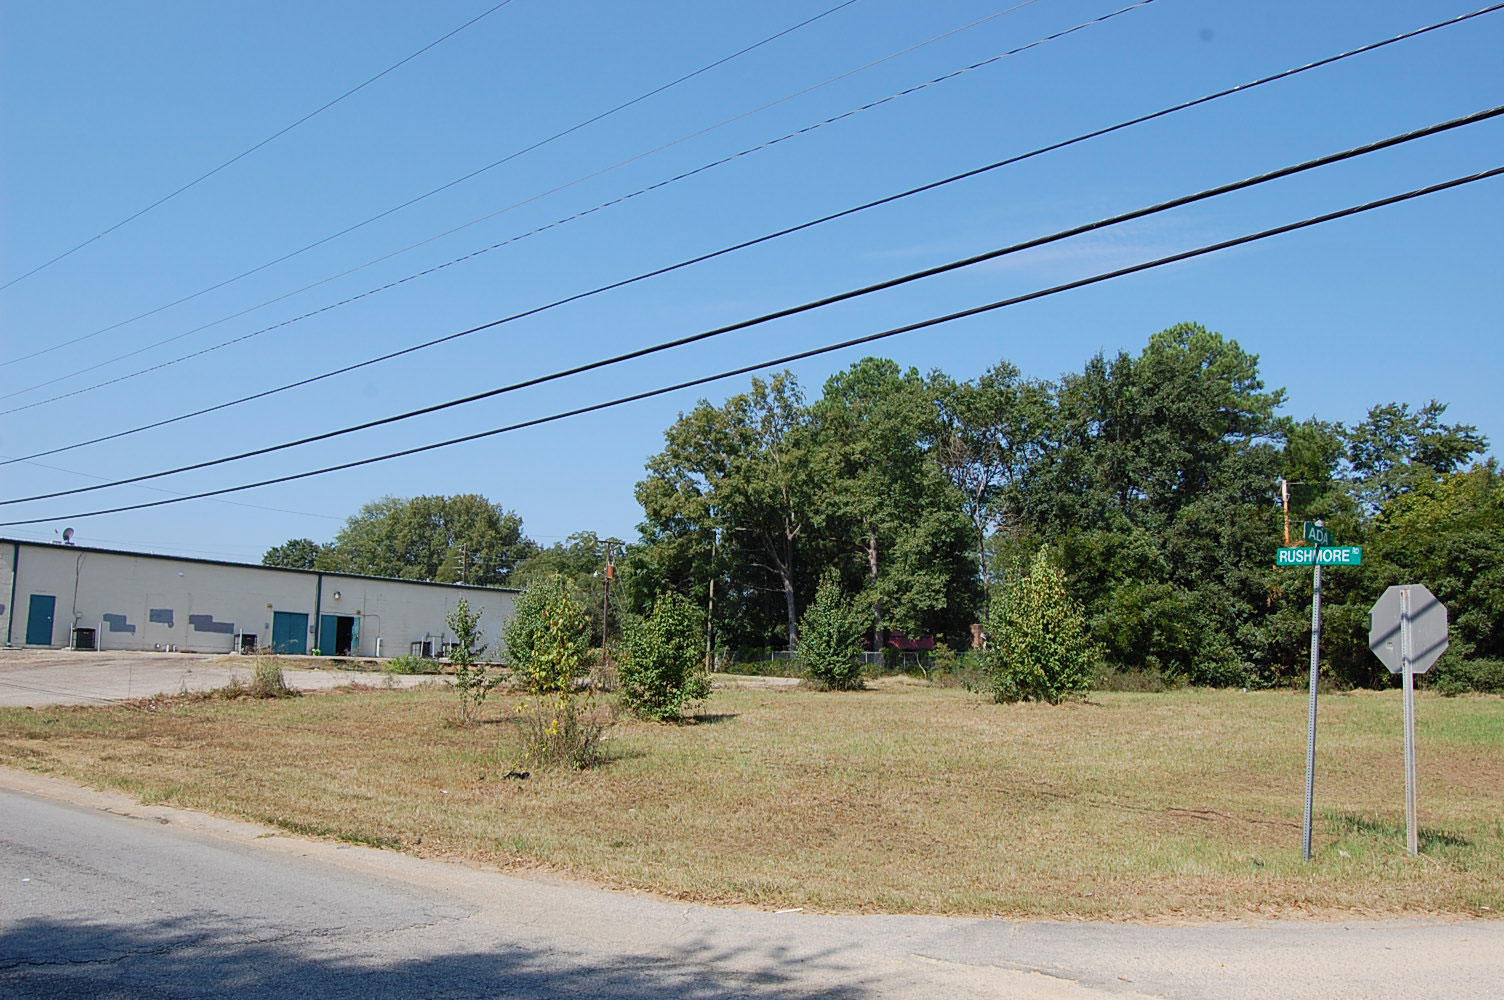 Large City Lot Zoned for Commercial and Residential Use - Image 4